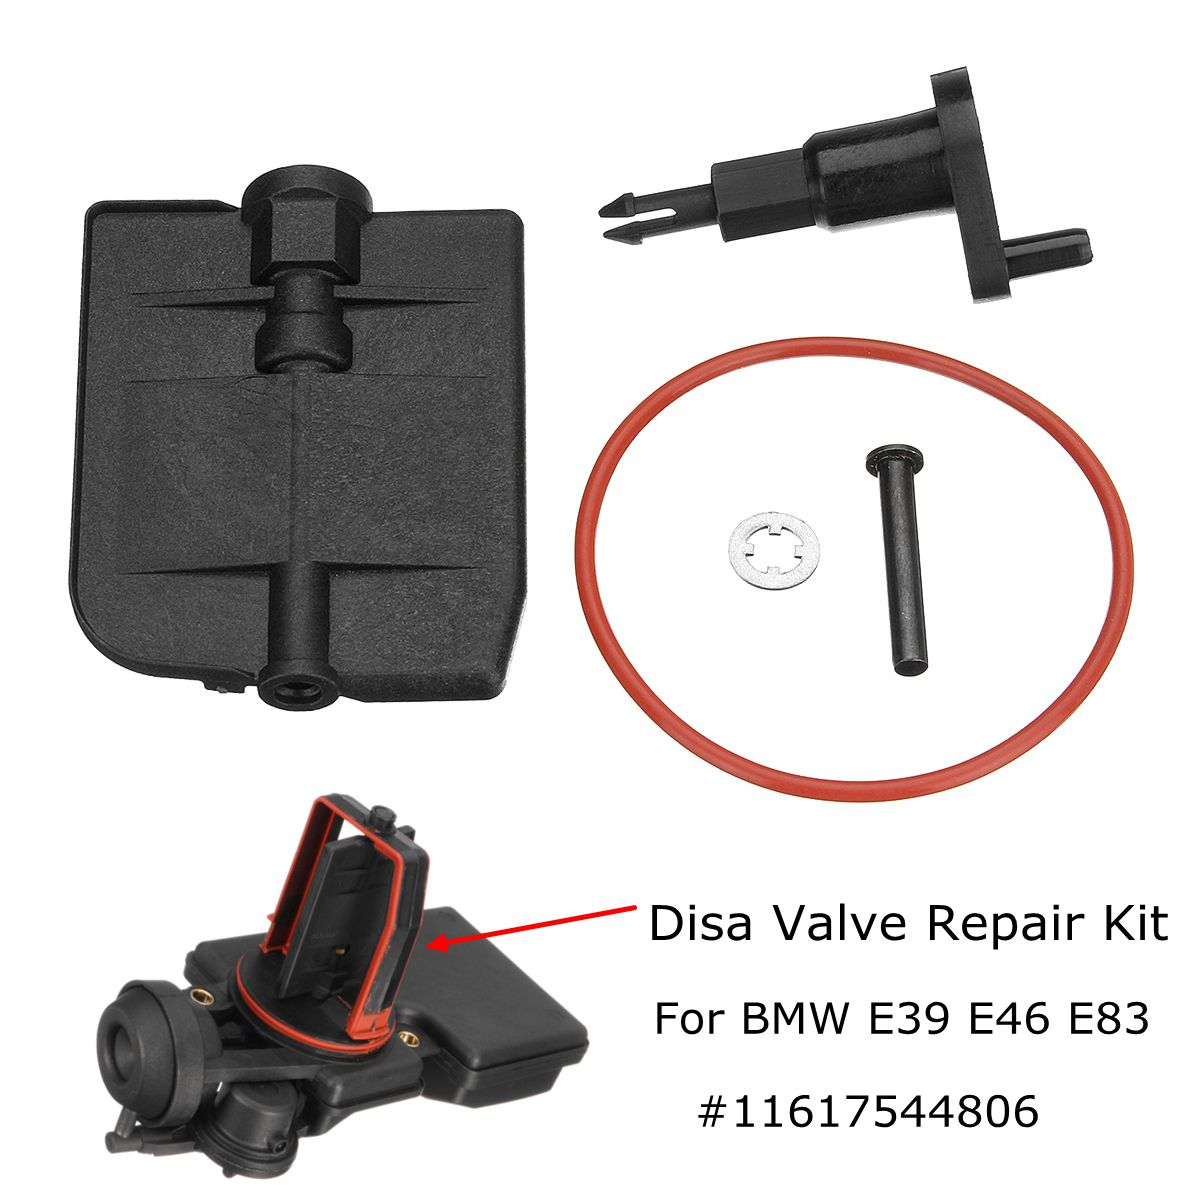 Intake Manifold DISA Valve Repair Kit 11617544806 For BMW E39 E46 E83 325i 525i M54 2.5 2001-2006